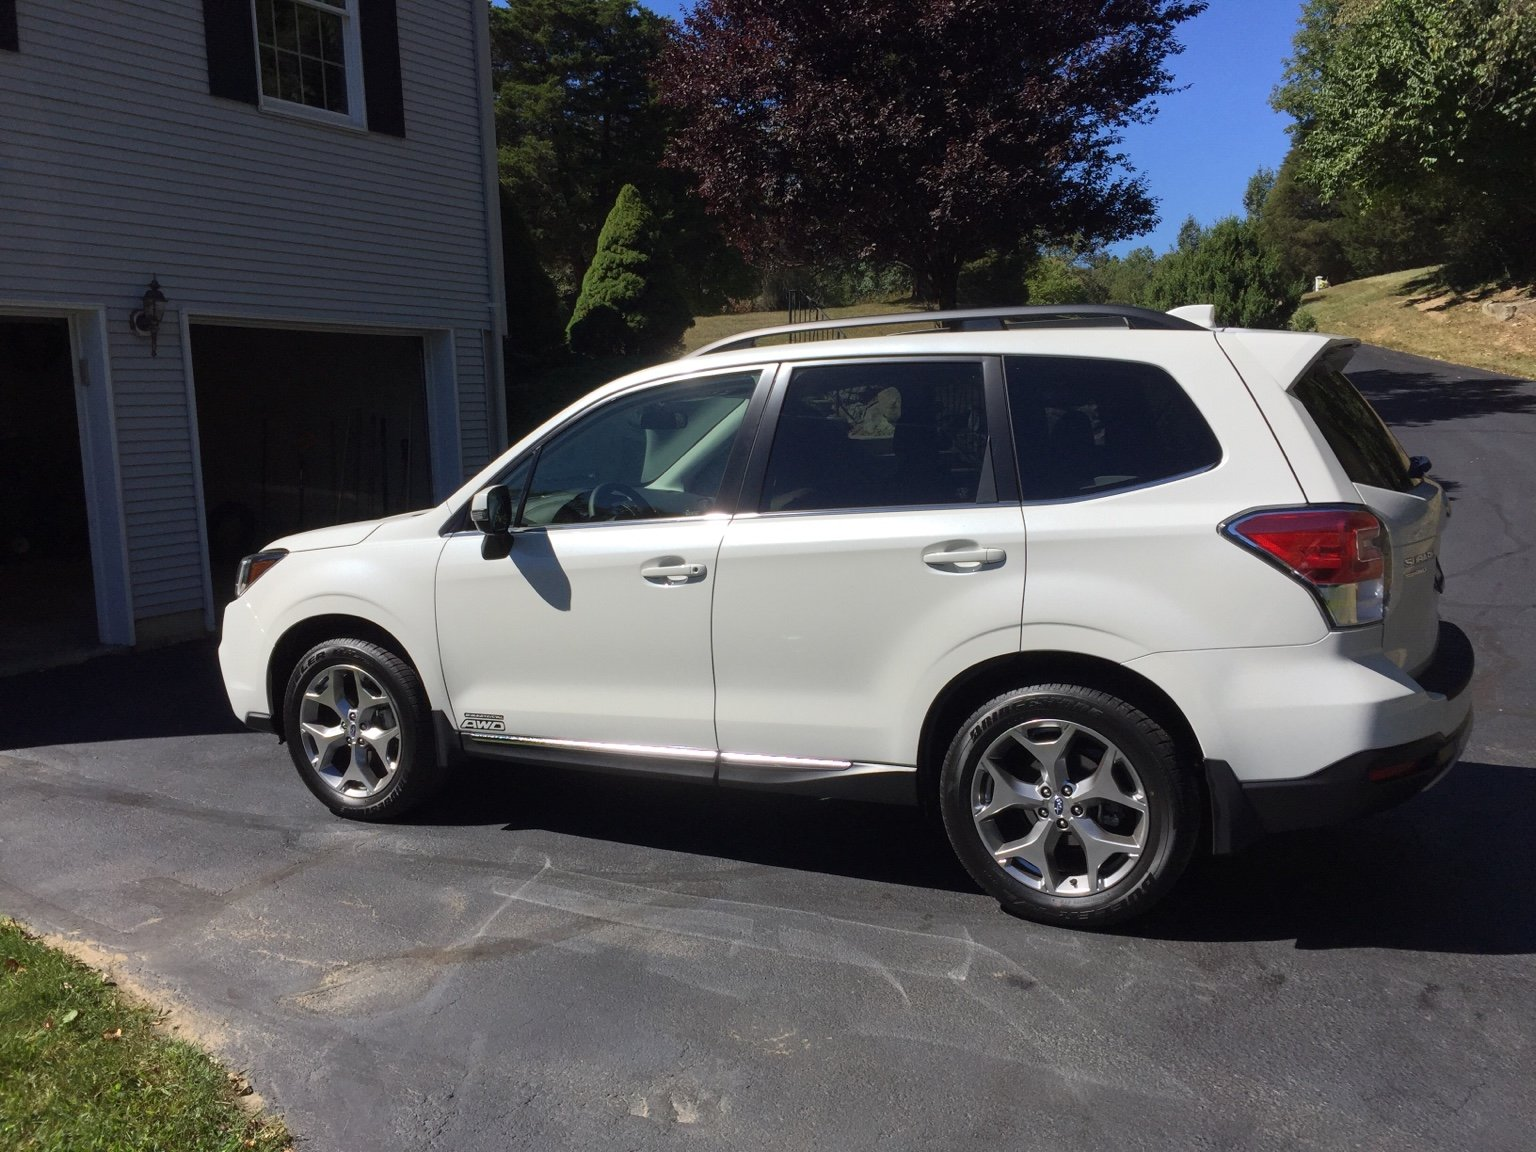 New owner 2017 Forester Subaru Forester Owners Forum